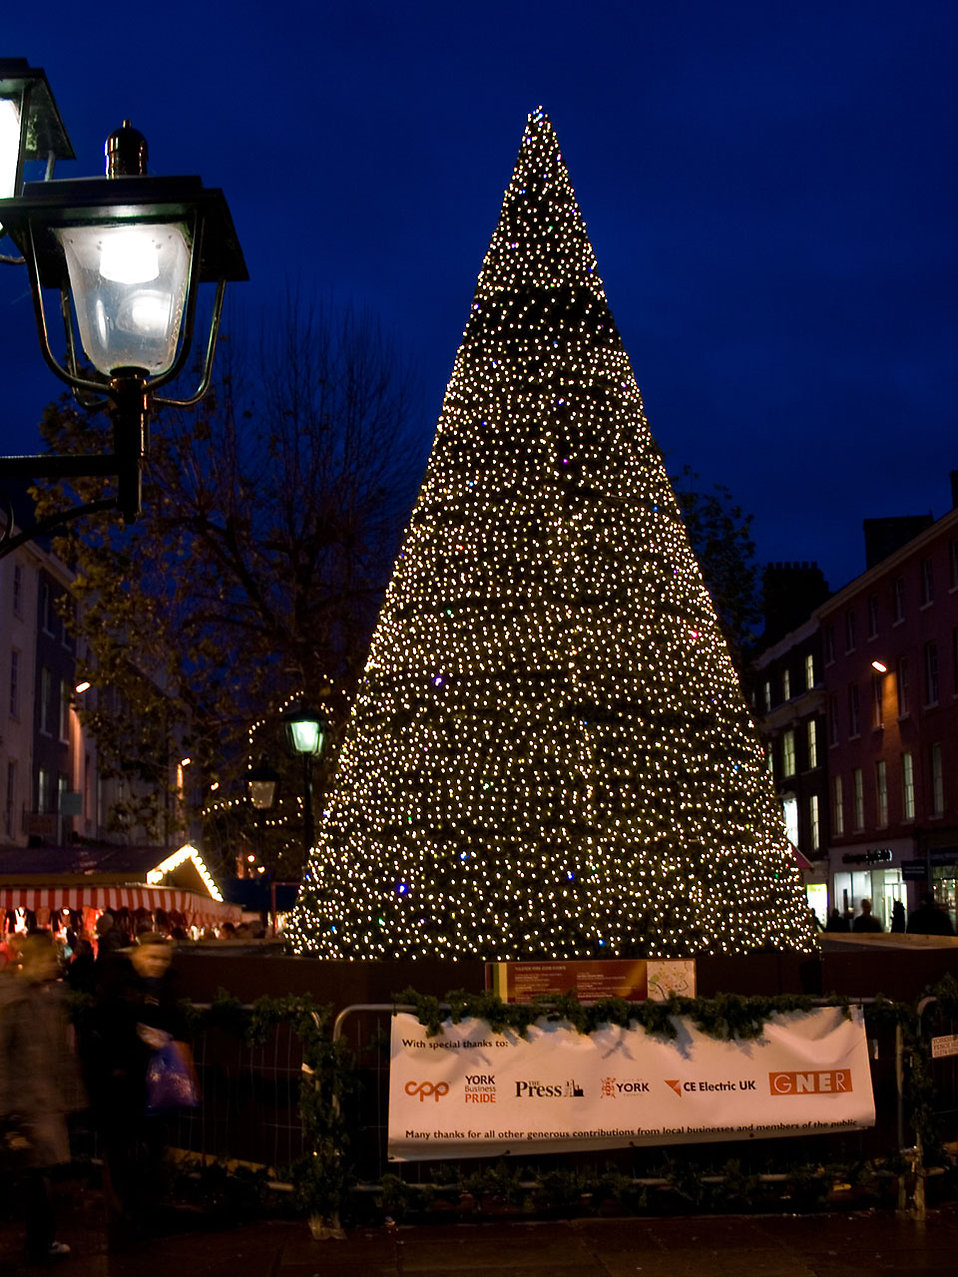 A Christmas tree in York : Free Stock Photo